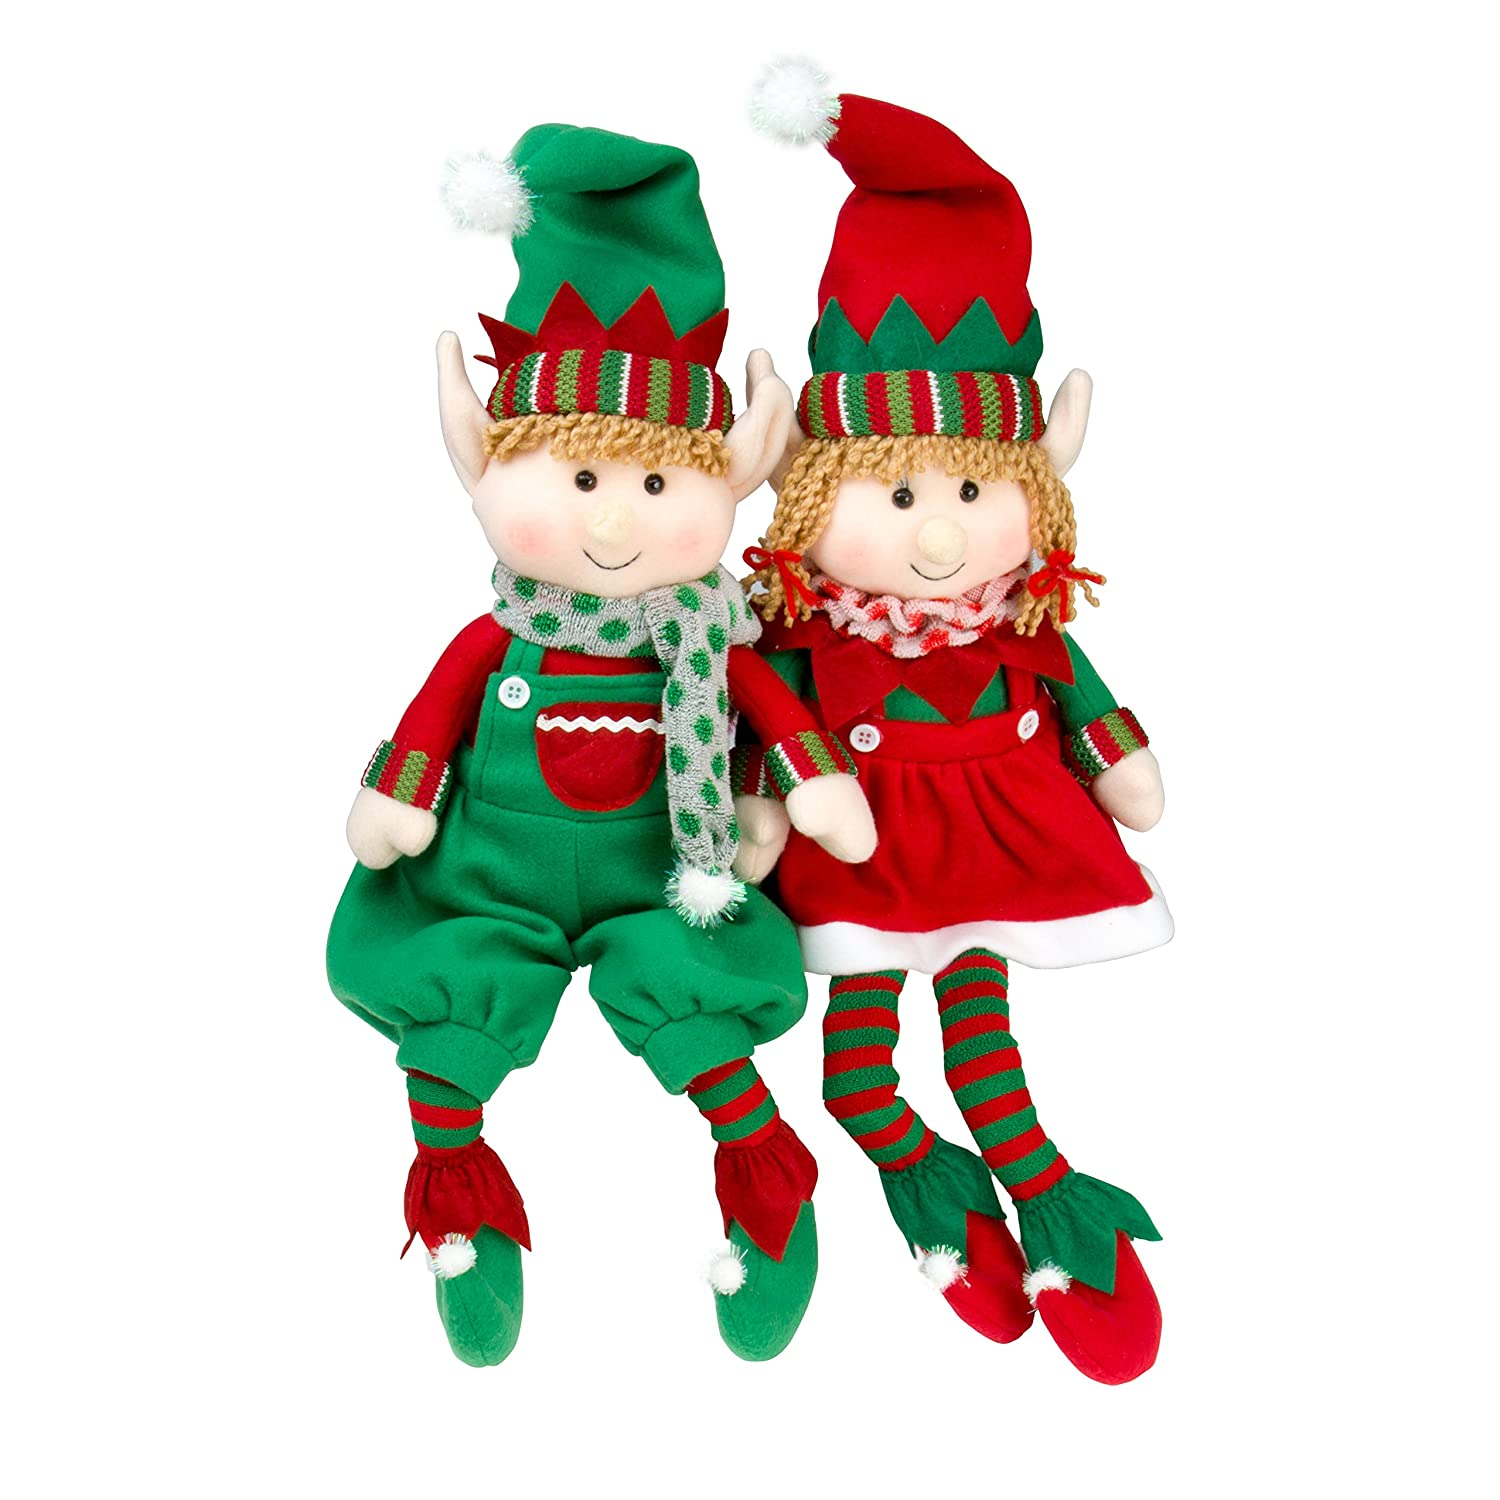 SCS Direct Elf Plush Christmas Stuffed Toys 12 Boy and Girl Elves Set of 2 Holiday Plush Characters